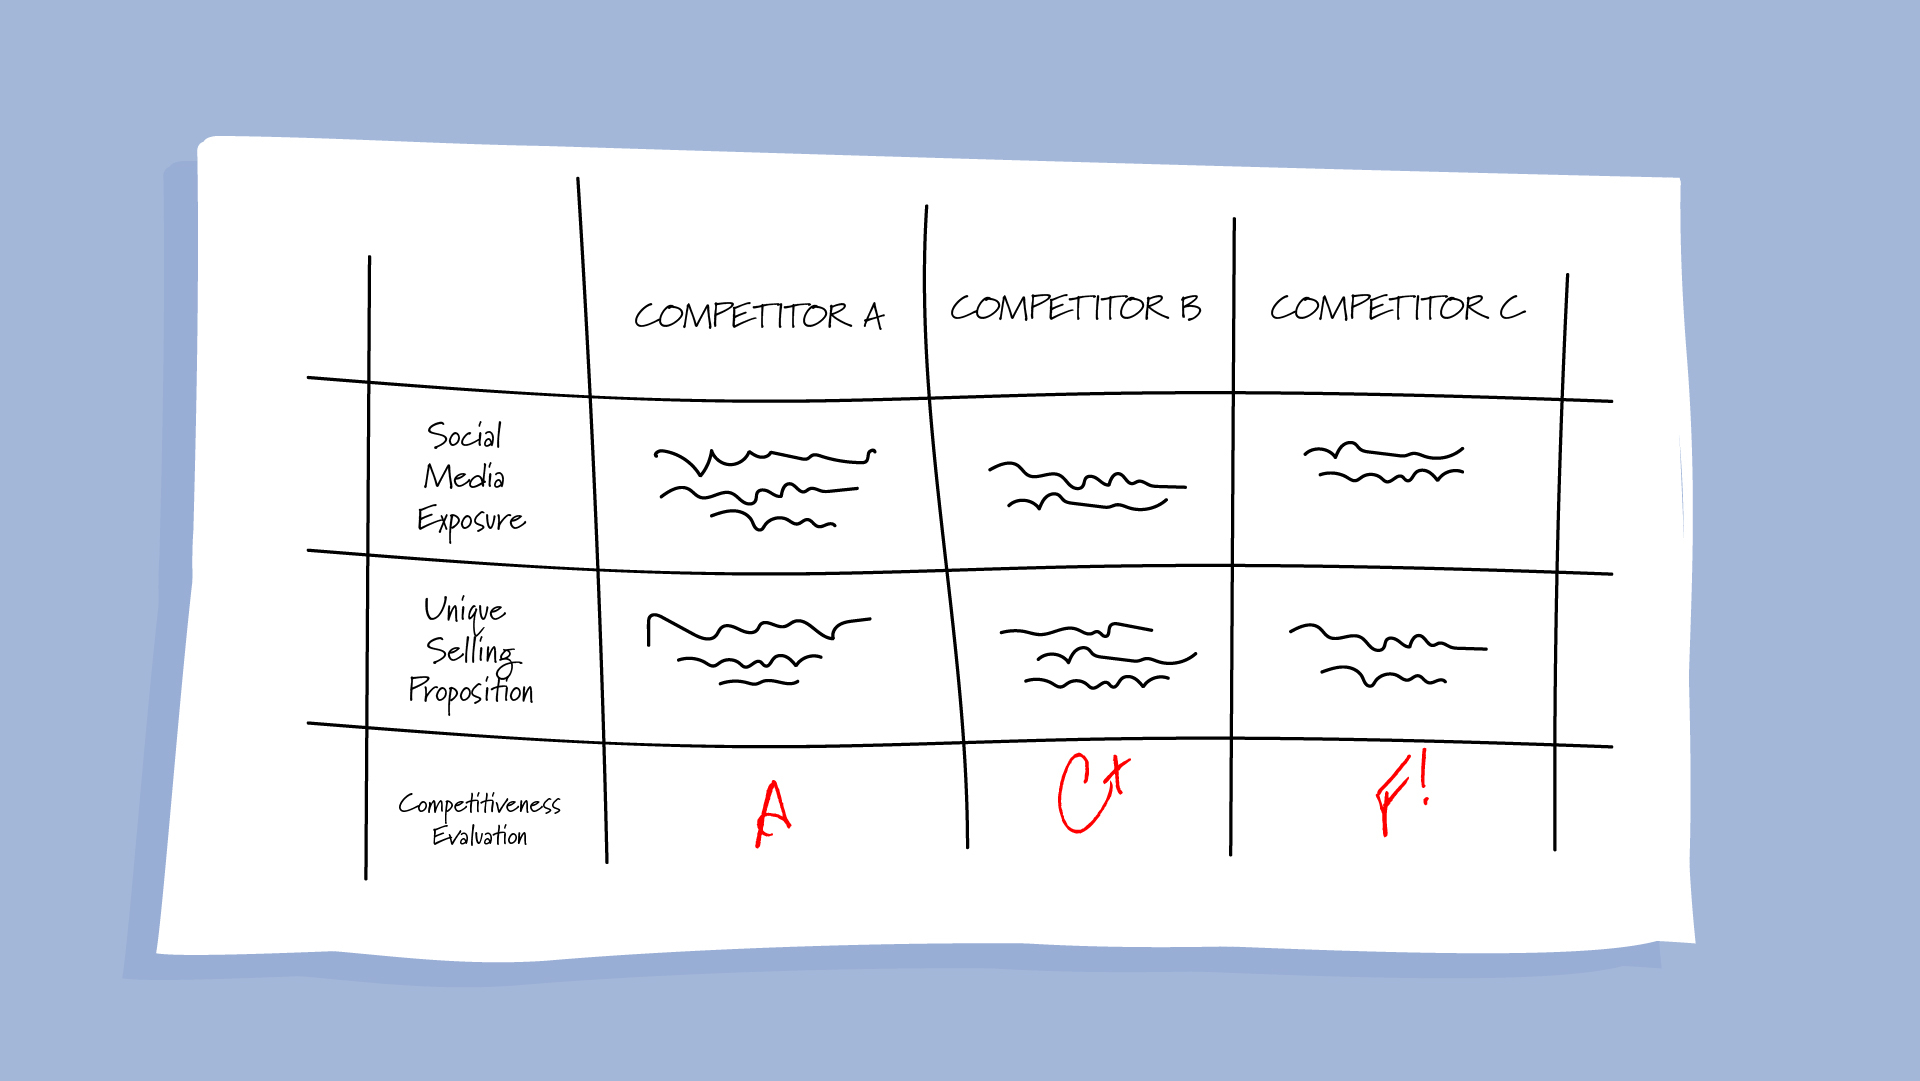 A table is a great way to summarise conducting research and competitive benchmarking